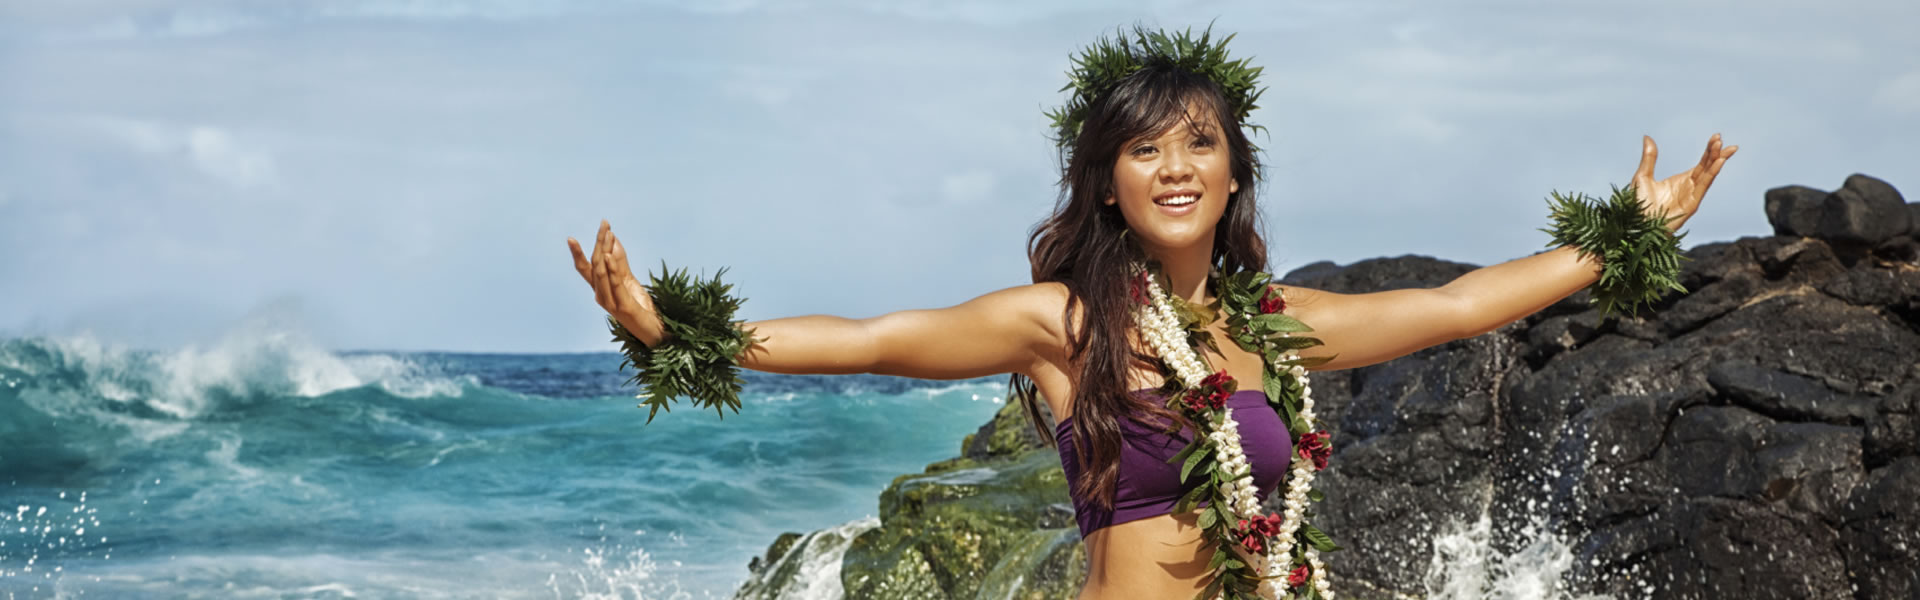 Woman wearing hawaiian skirt and head dress with ocean in background